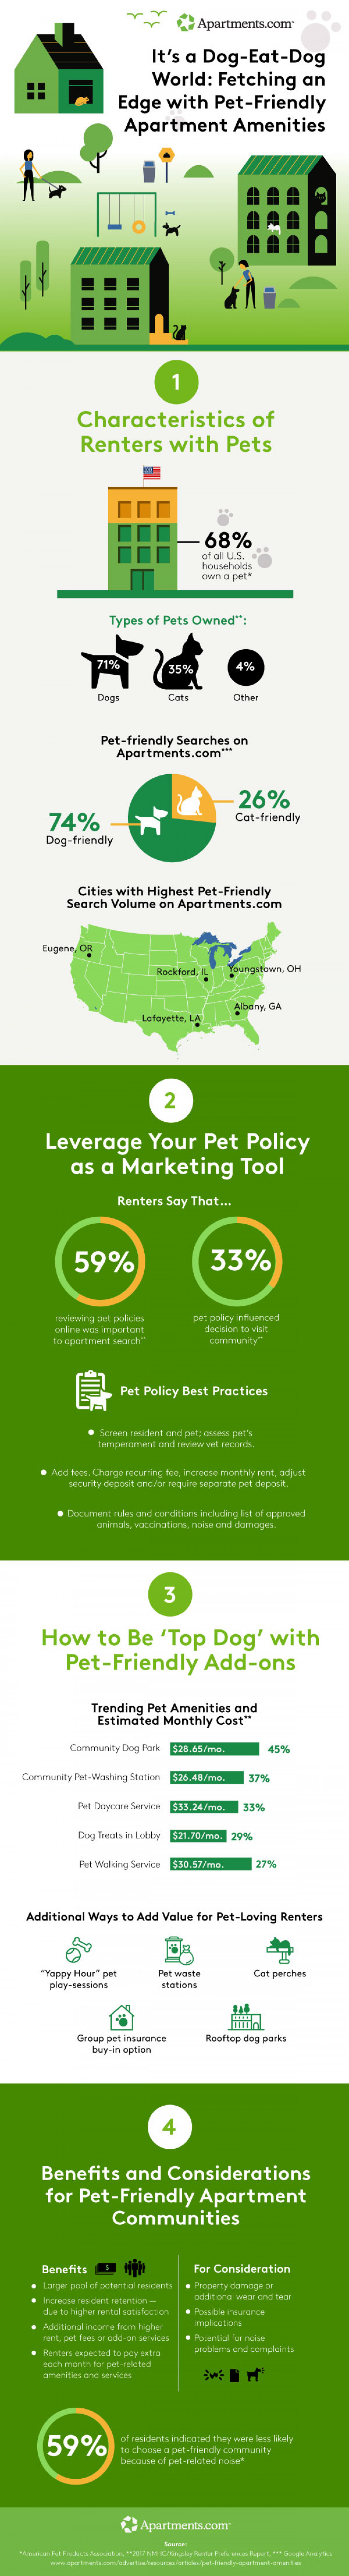 Fetching an Edge with Pet-Friendly Apartment Amenities Infographic